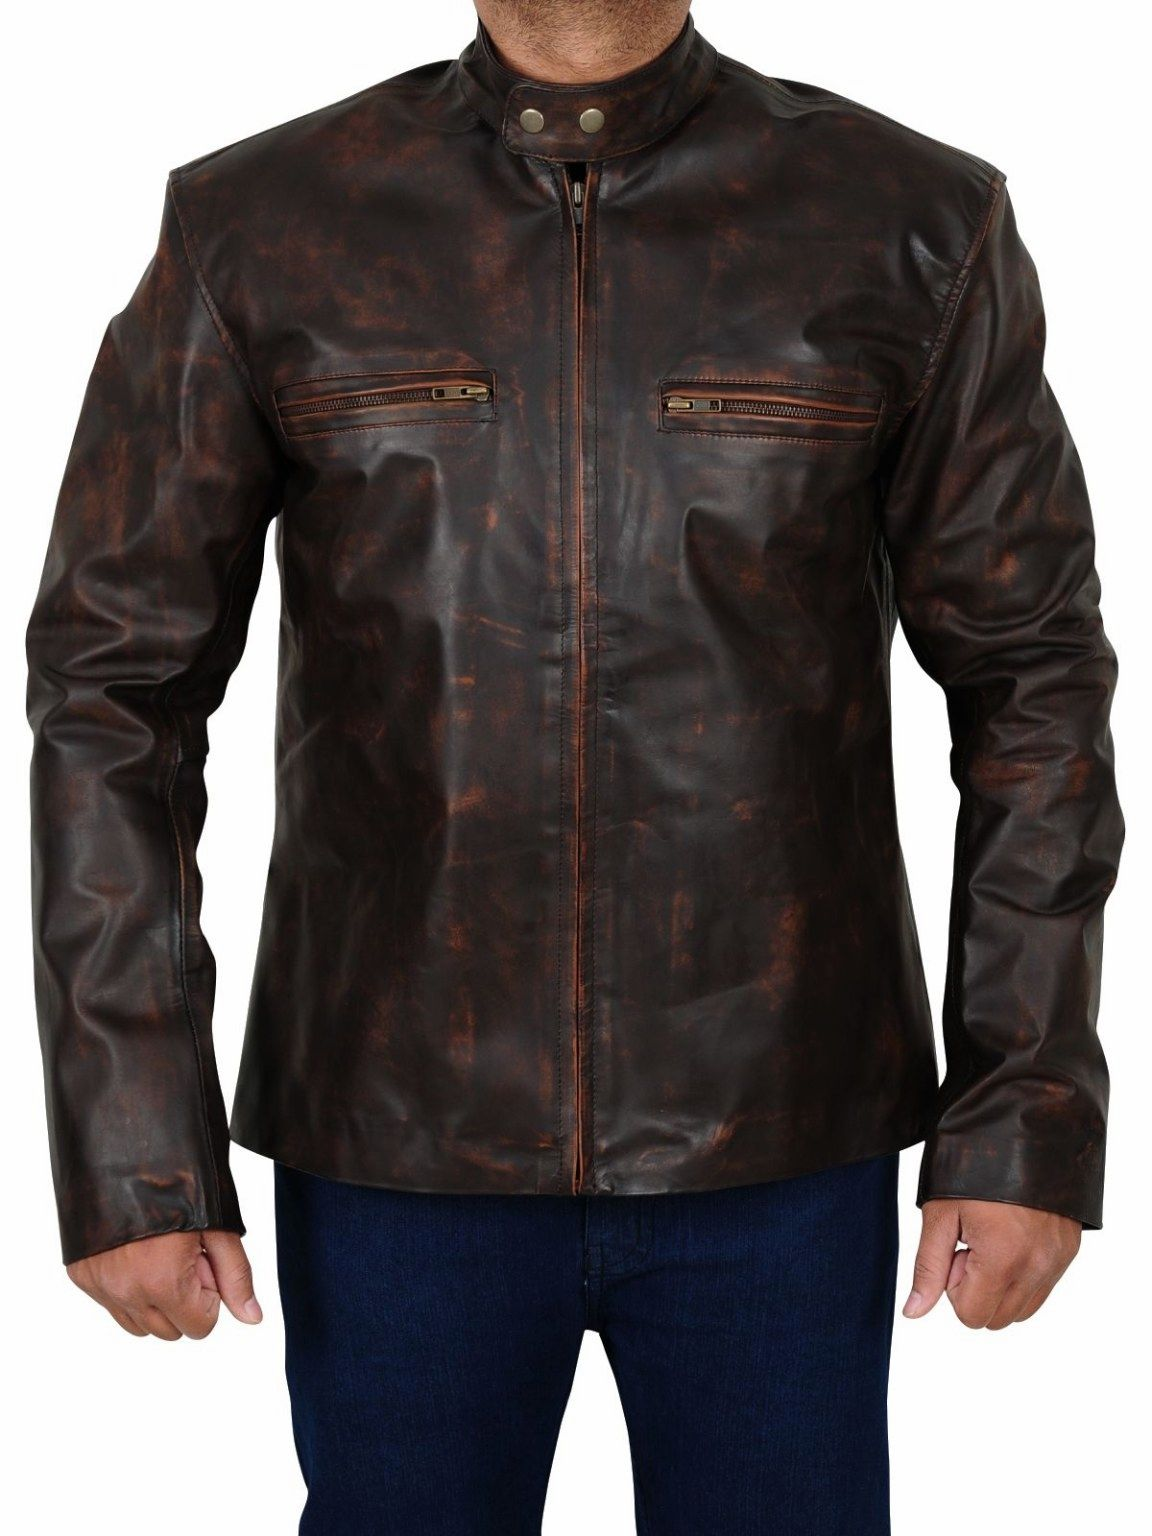 Mens winter jackets on sale mens fashion jackets in